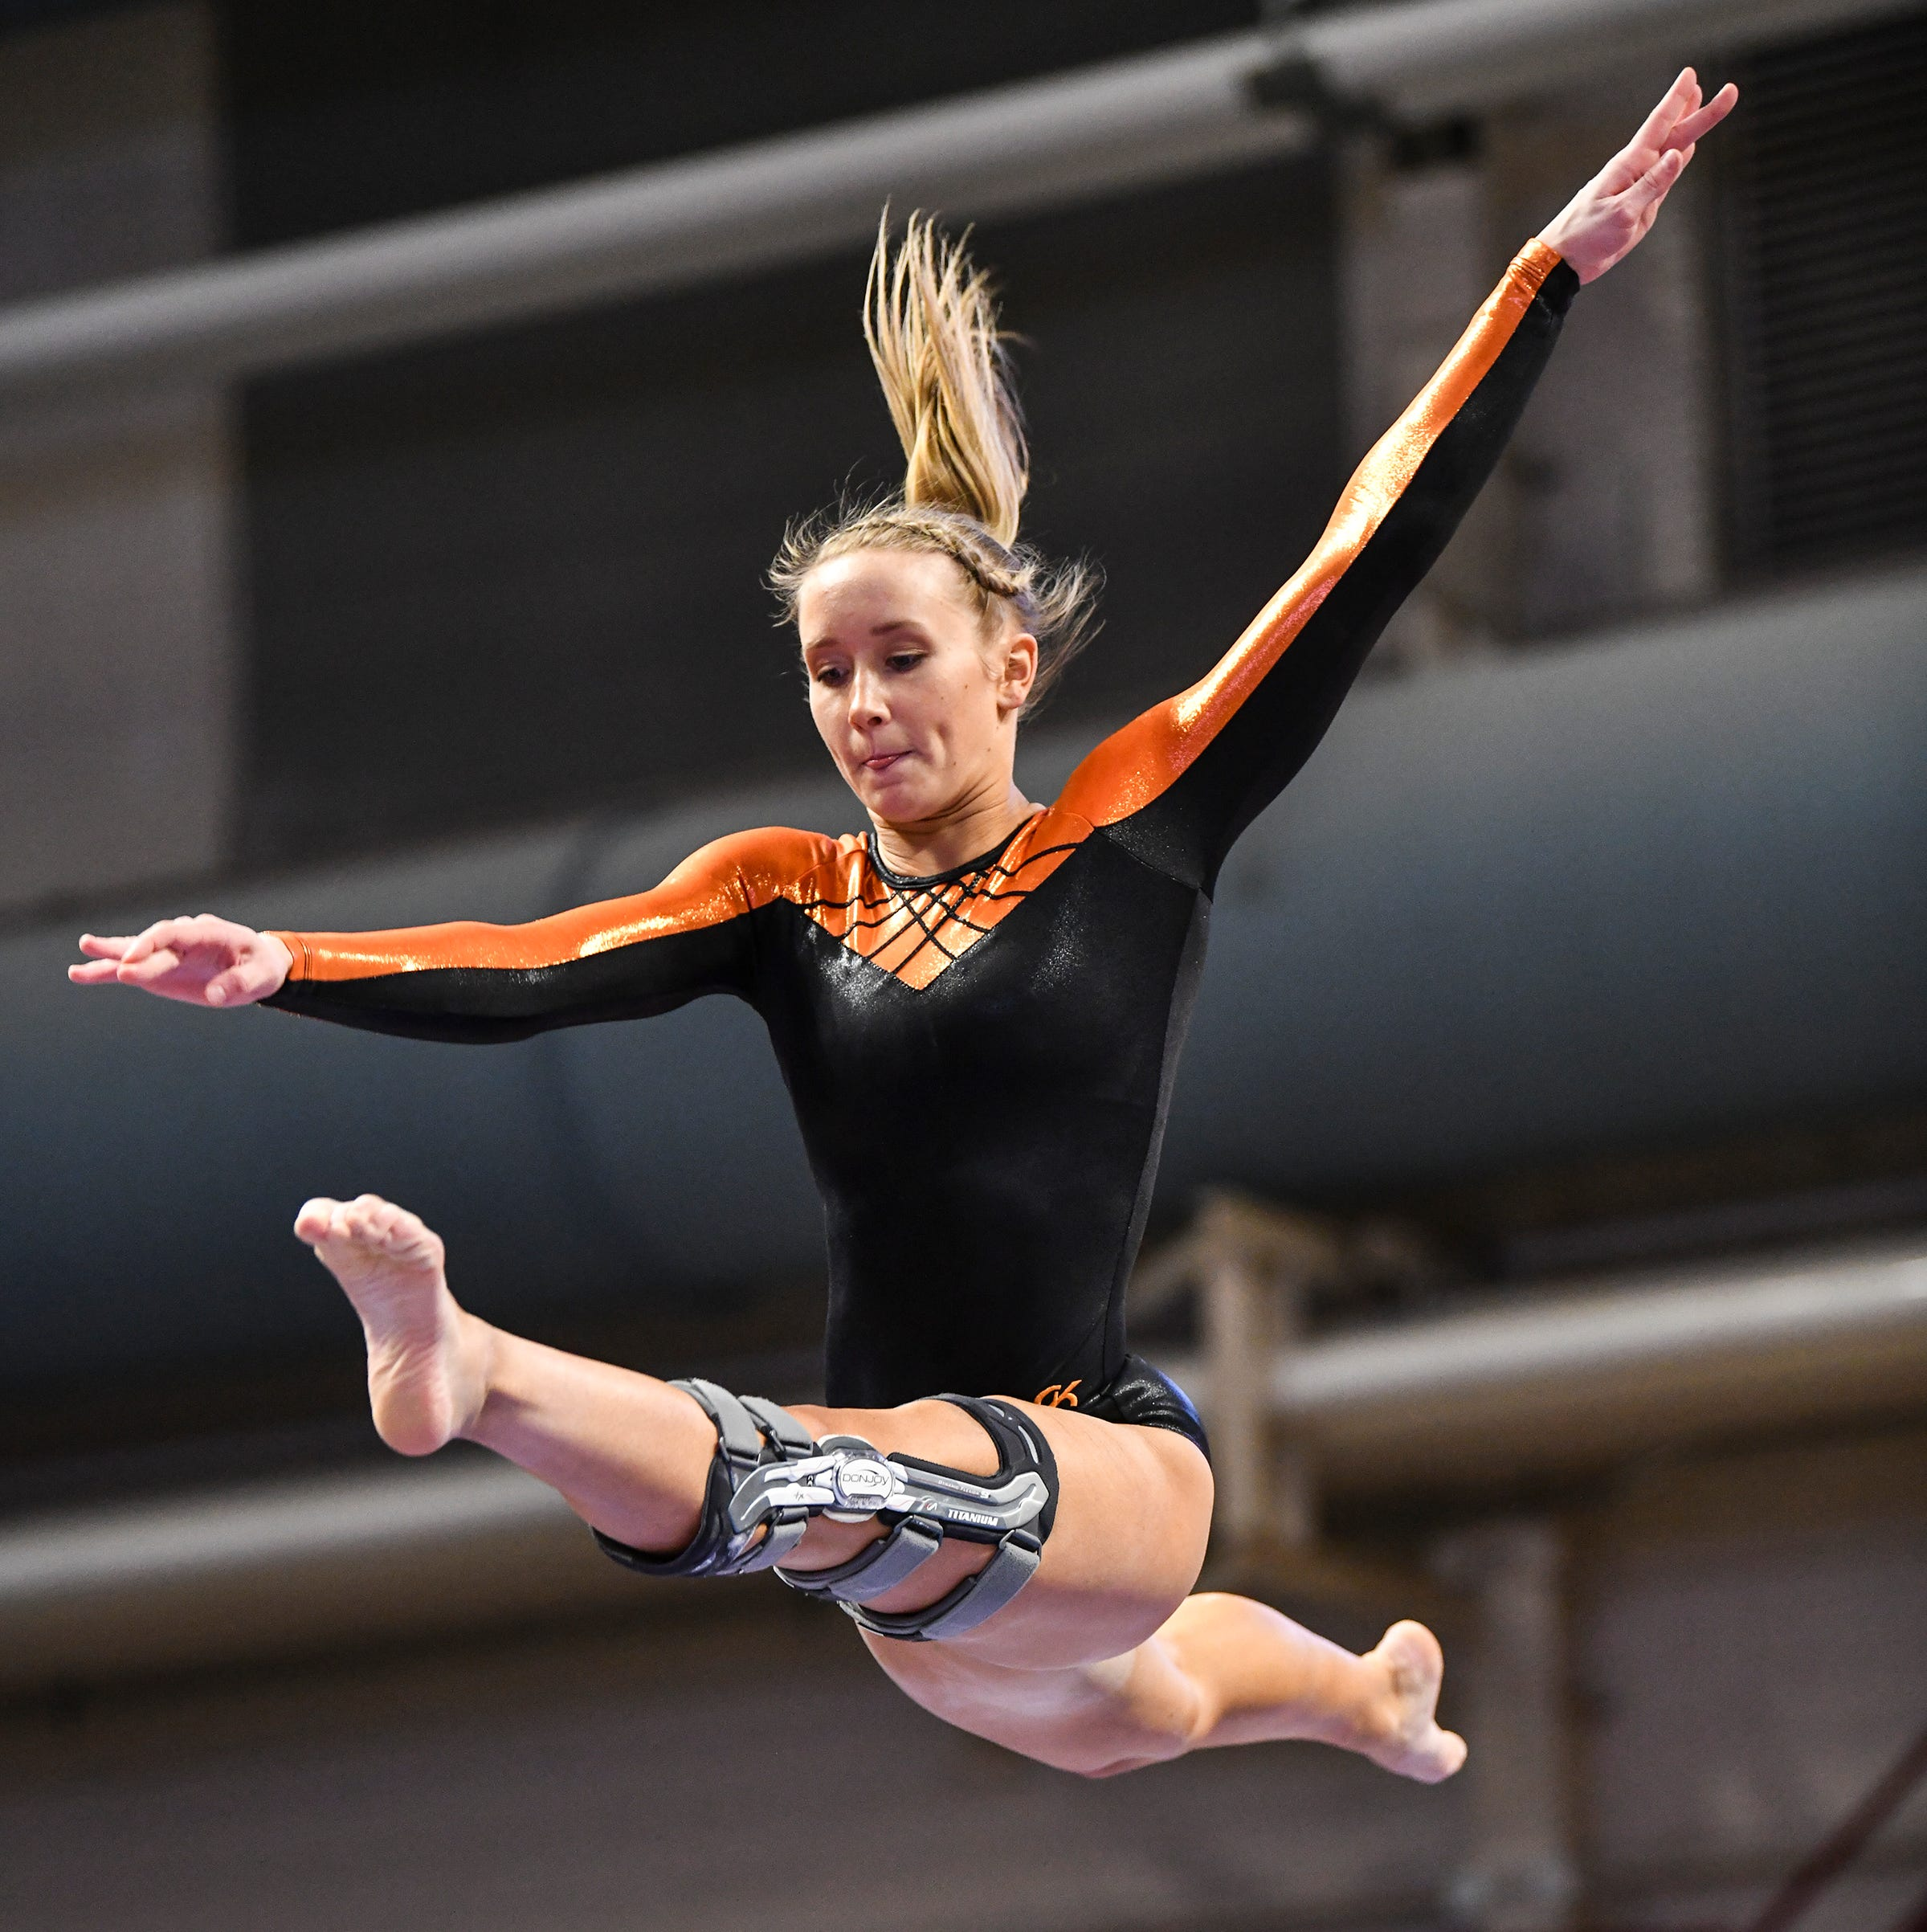 Overcoming fear: Tech gymnast returns to state after injury